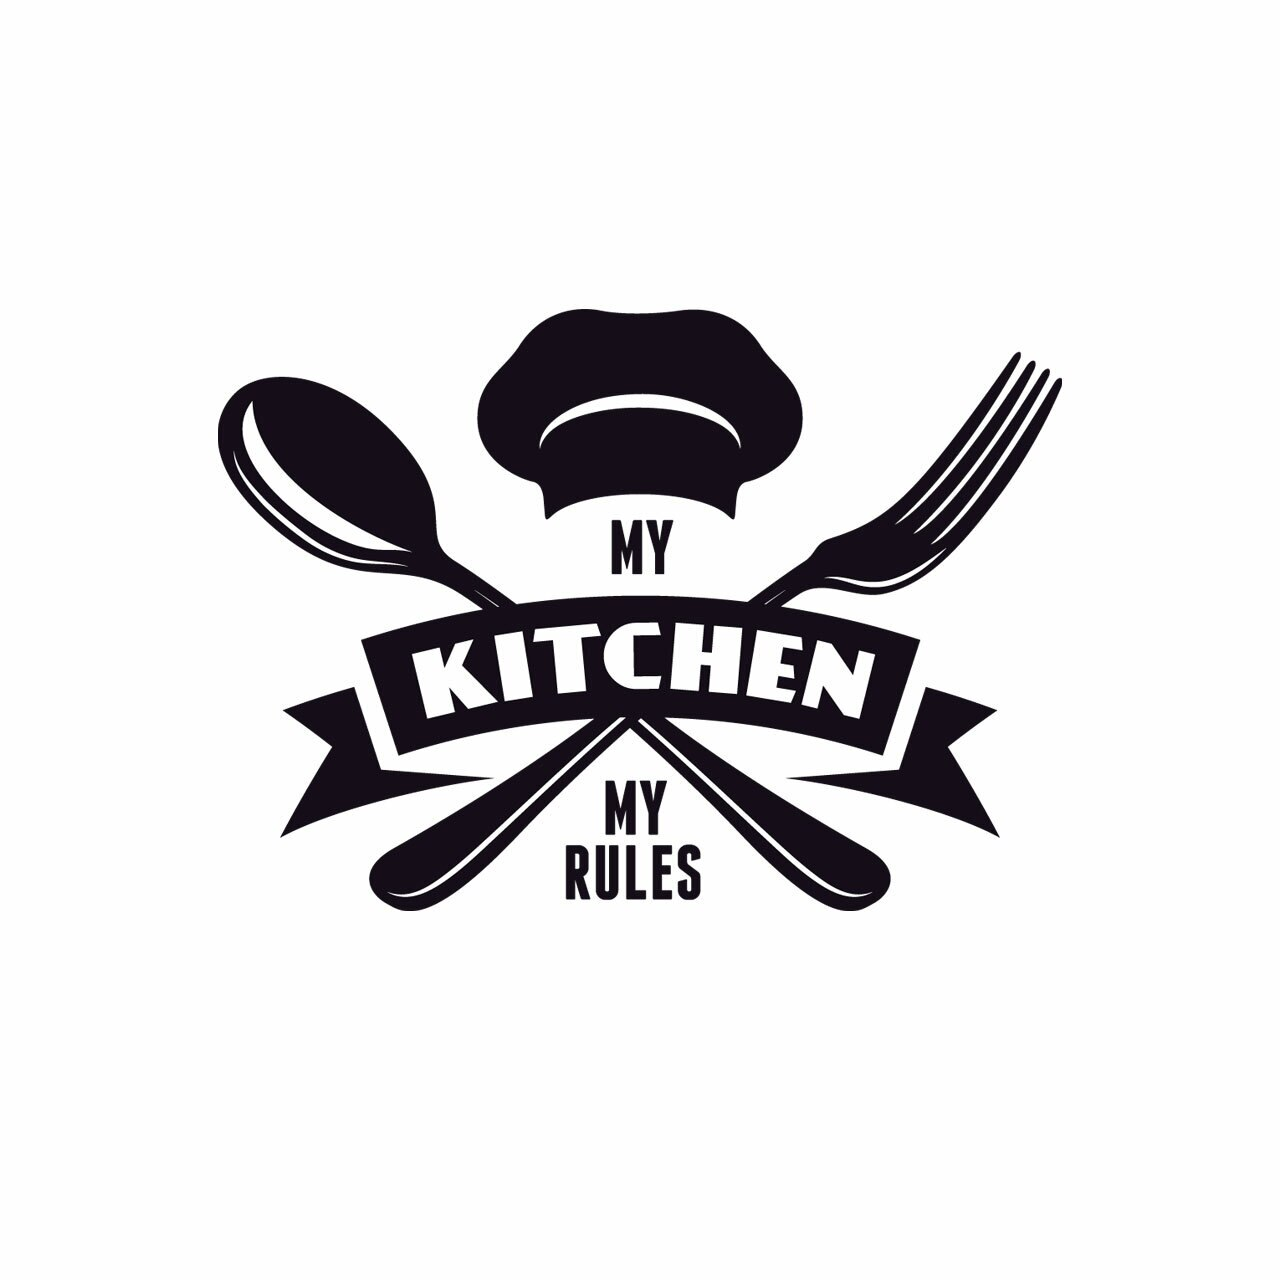 """""""My Rules My Kitchen"""" written in an artistic way including the words, a chef's hat, a spoon and fork, and a banner in black on a white background"""